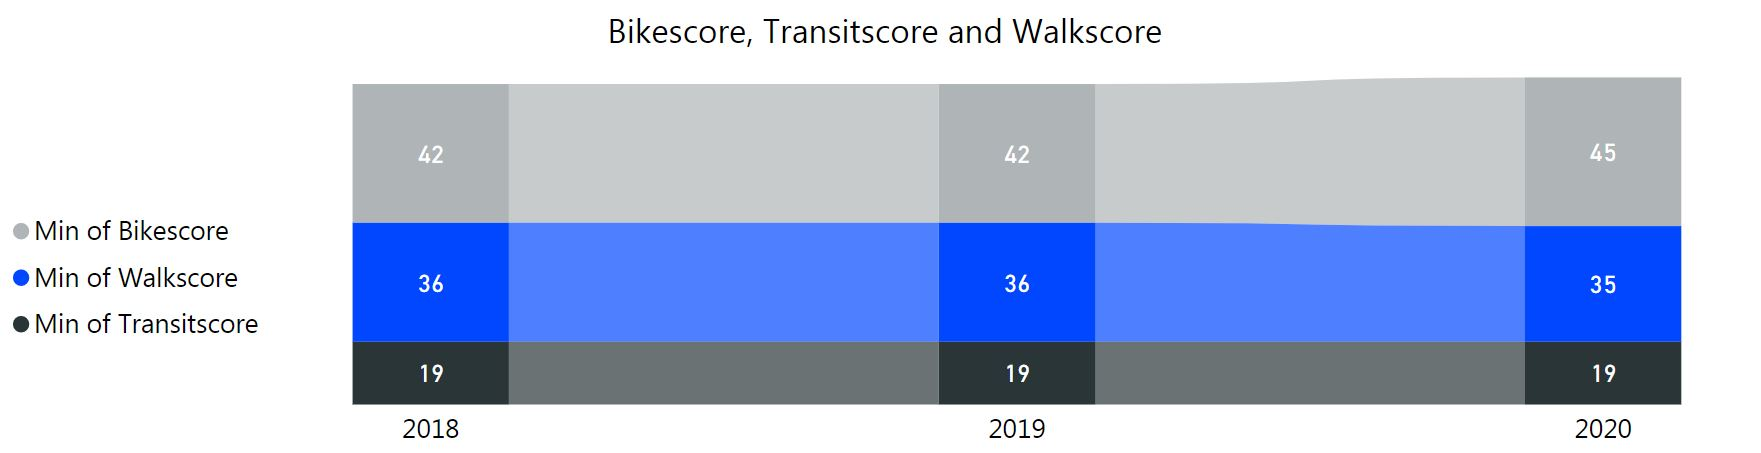 graph bike, transit, walkscore. in 2020 24 bike score, 35 walkscore, 19 transit score